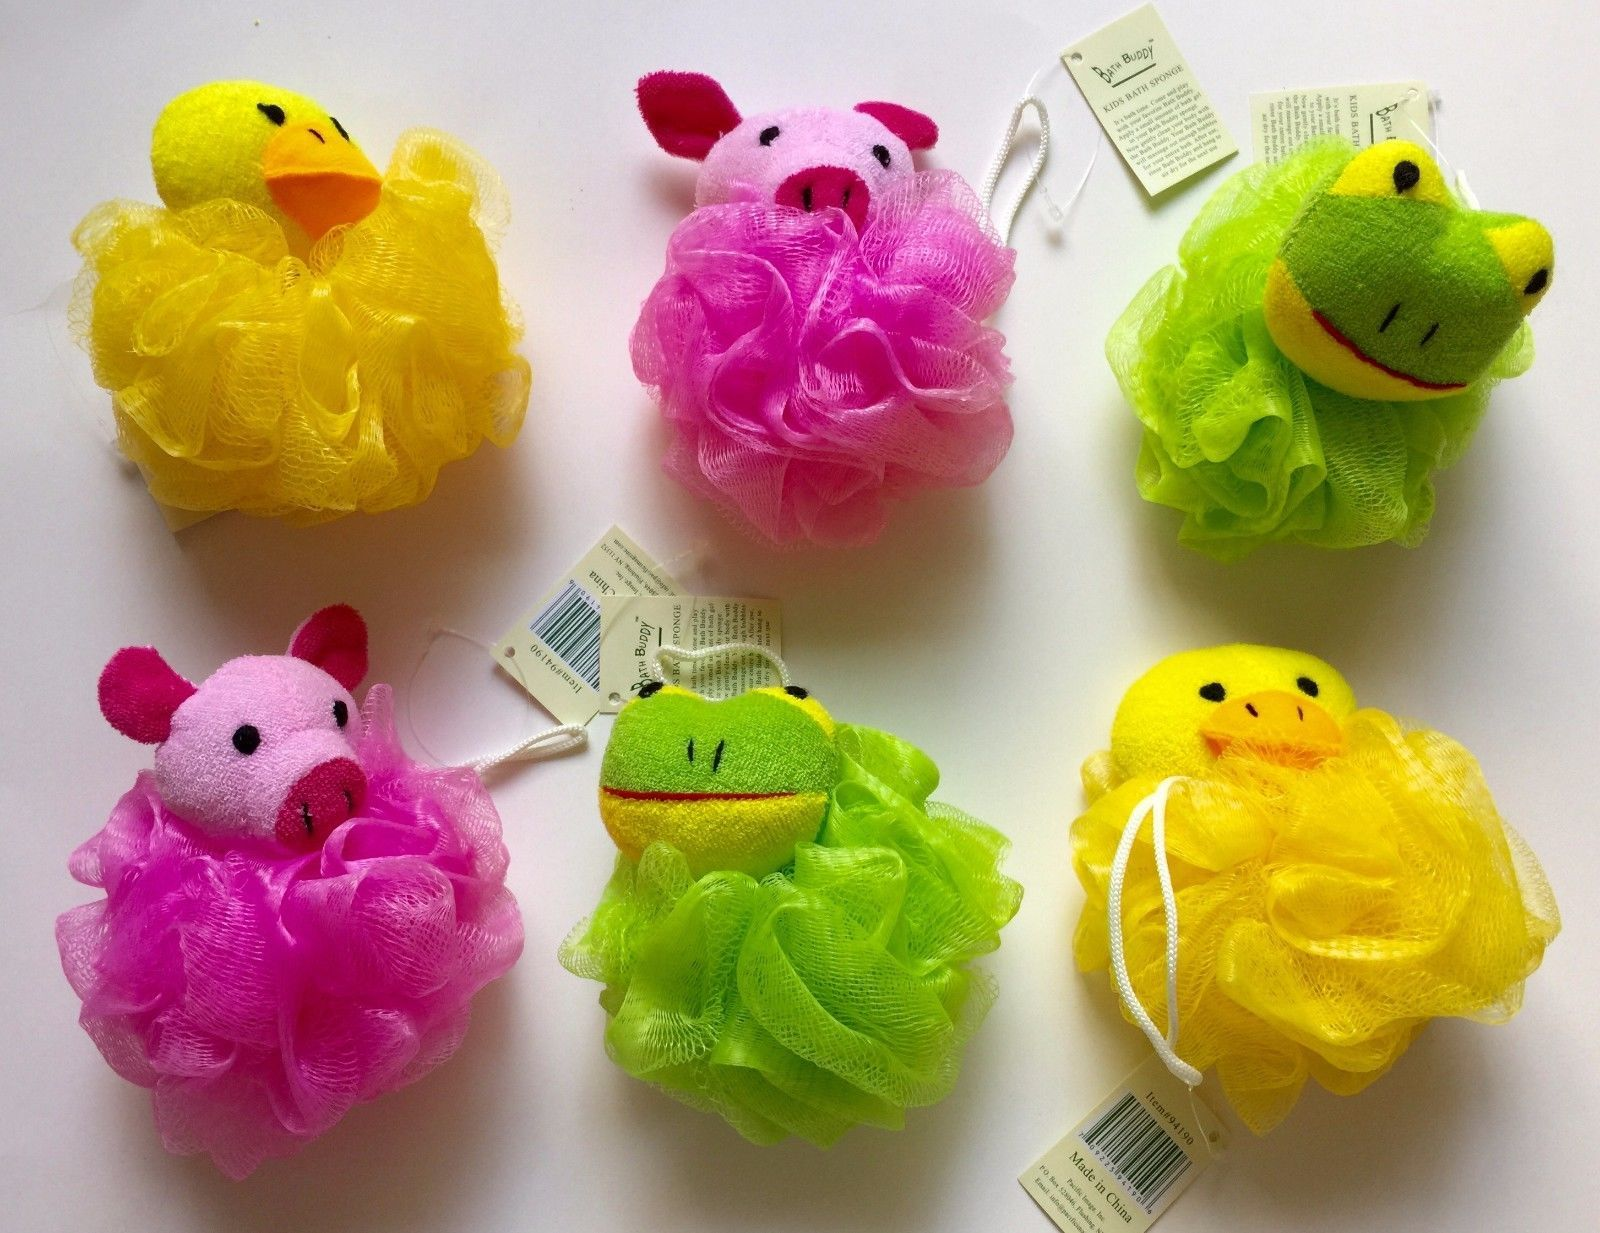 Lot of 6 Kids Toy Pouf Puff Mesh Bath Sponges with Stuffed Animal ...